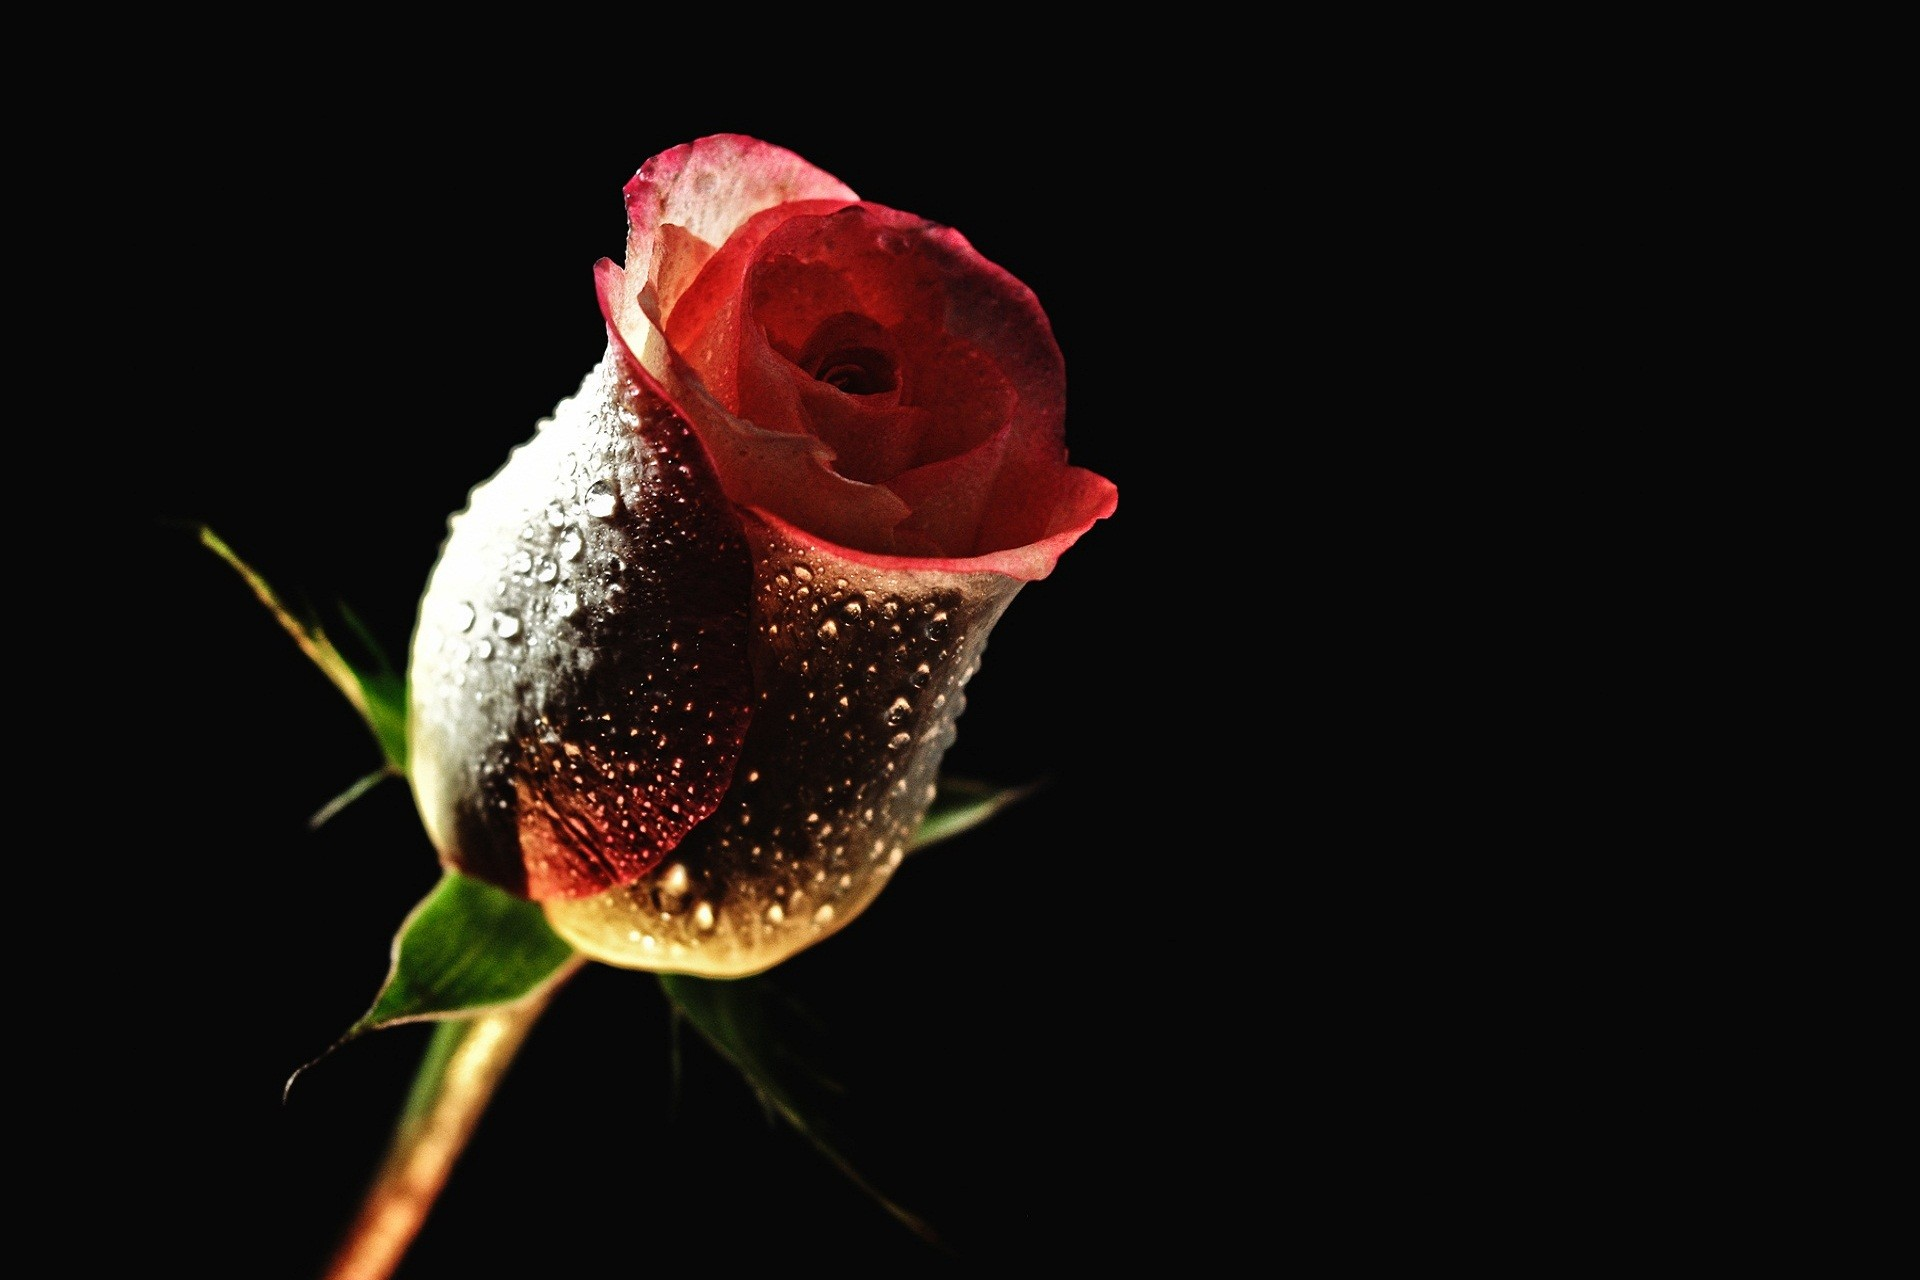 Explore Flower Backgrounds, Hd Backgrounds, and more! Red Rose With Black  Backgrounds Wallpaper